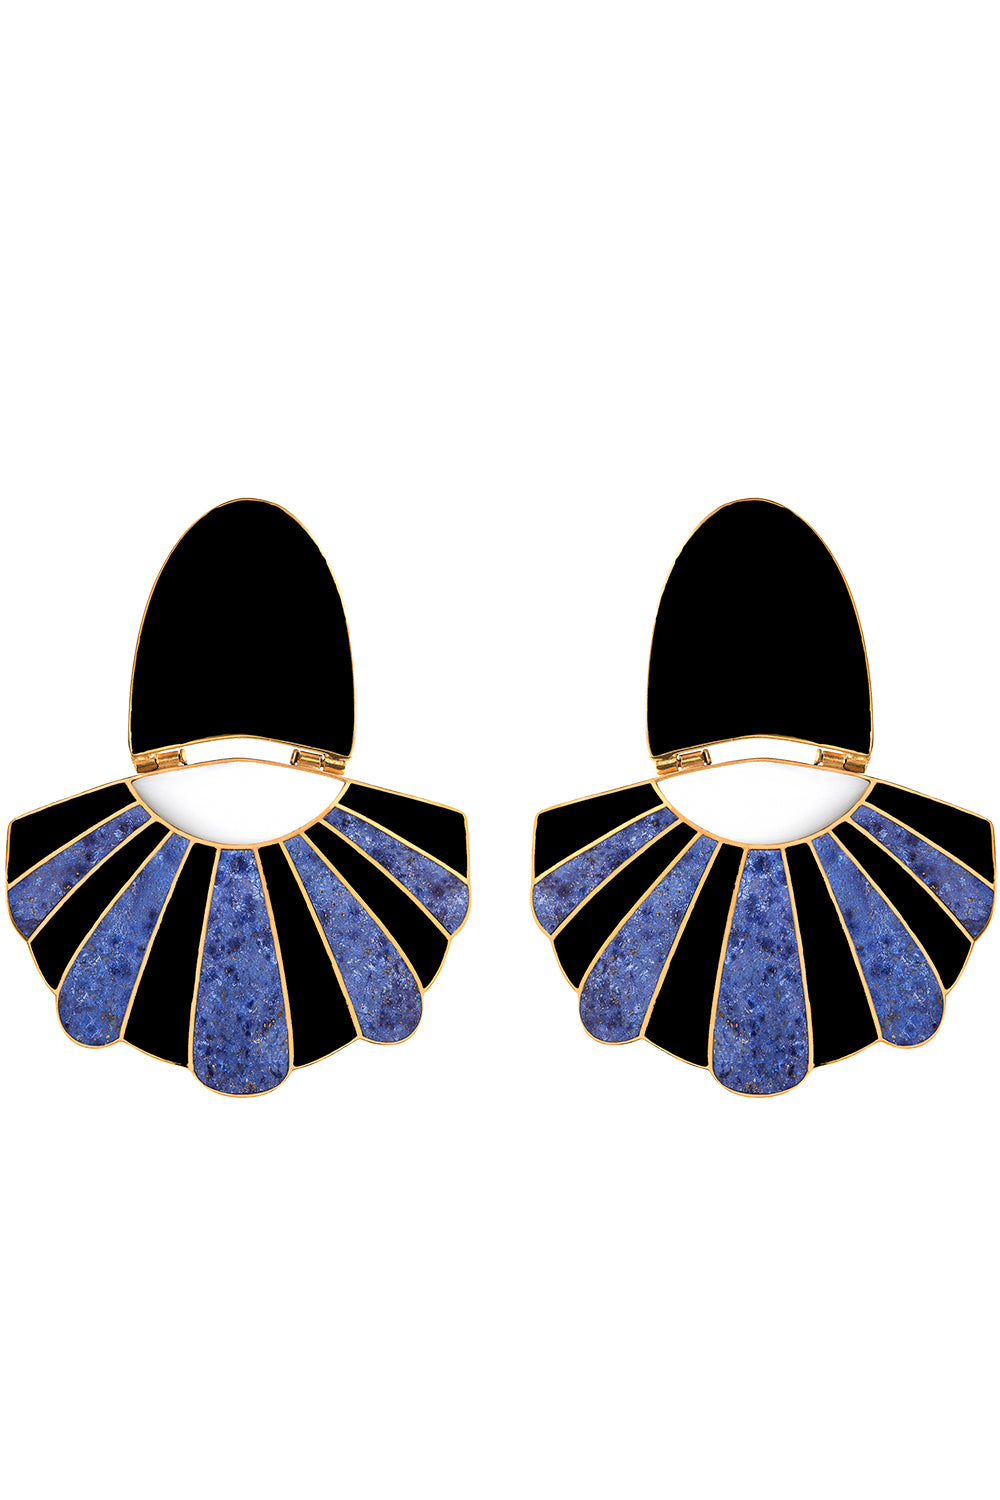 Mullu Chandelier Earrings in Blue